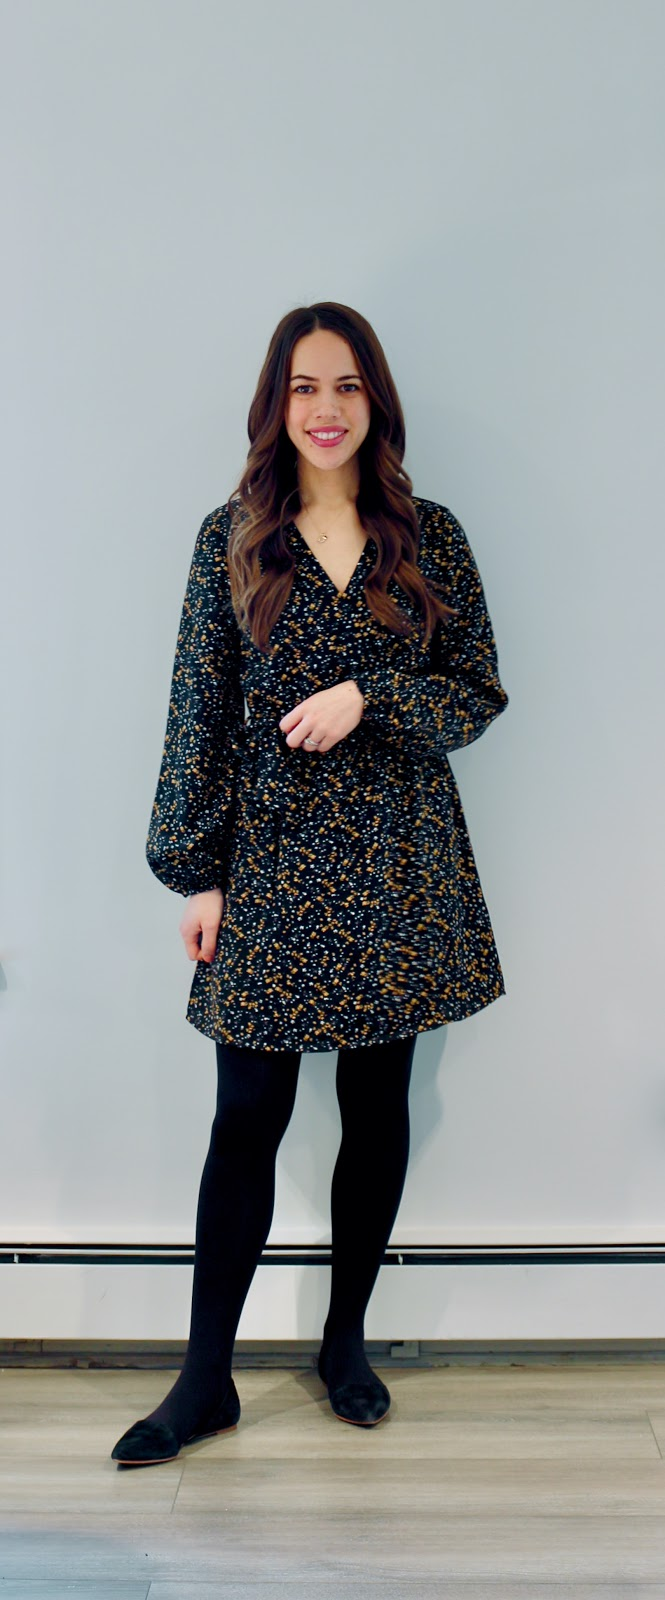 Jules in Flats - Dynamite Blaire Wrap Dress (Business Casual Winter Workwear on a Budget)